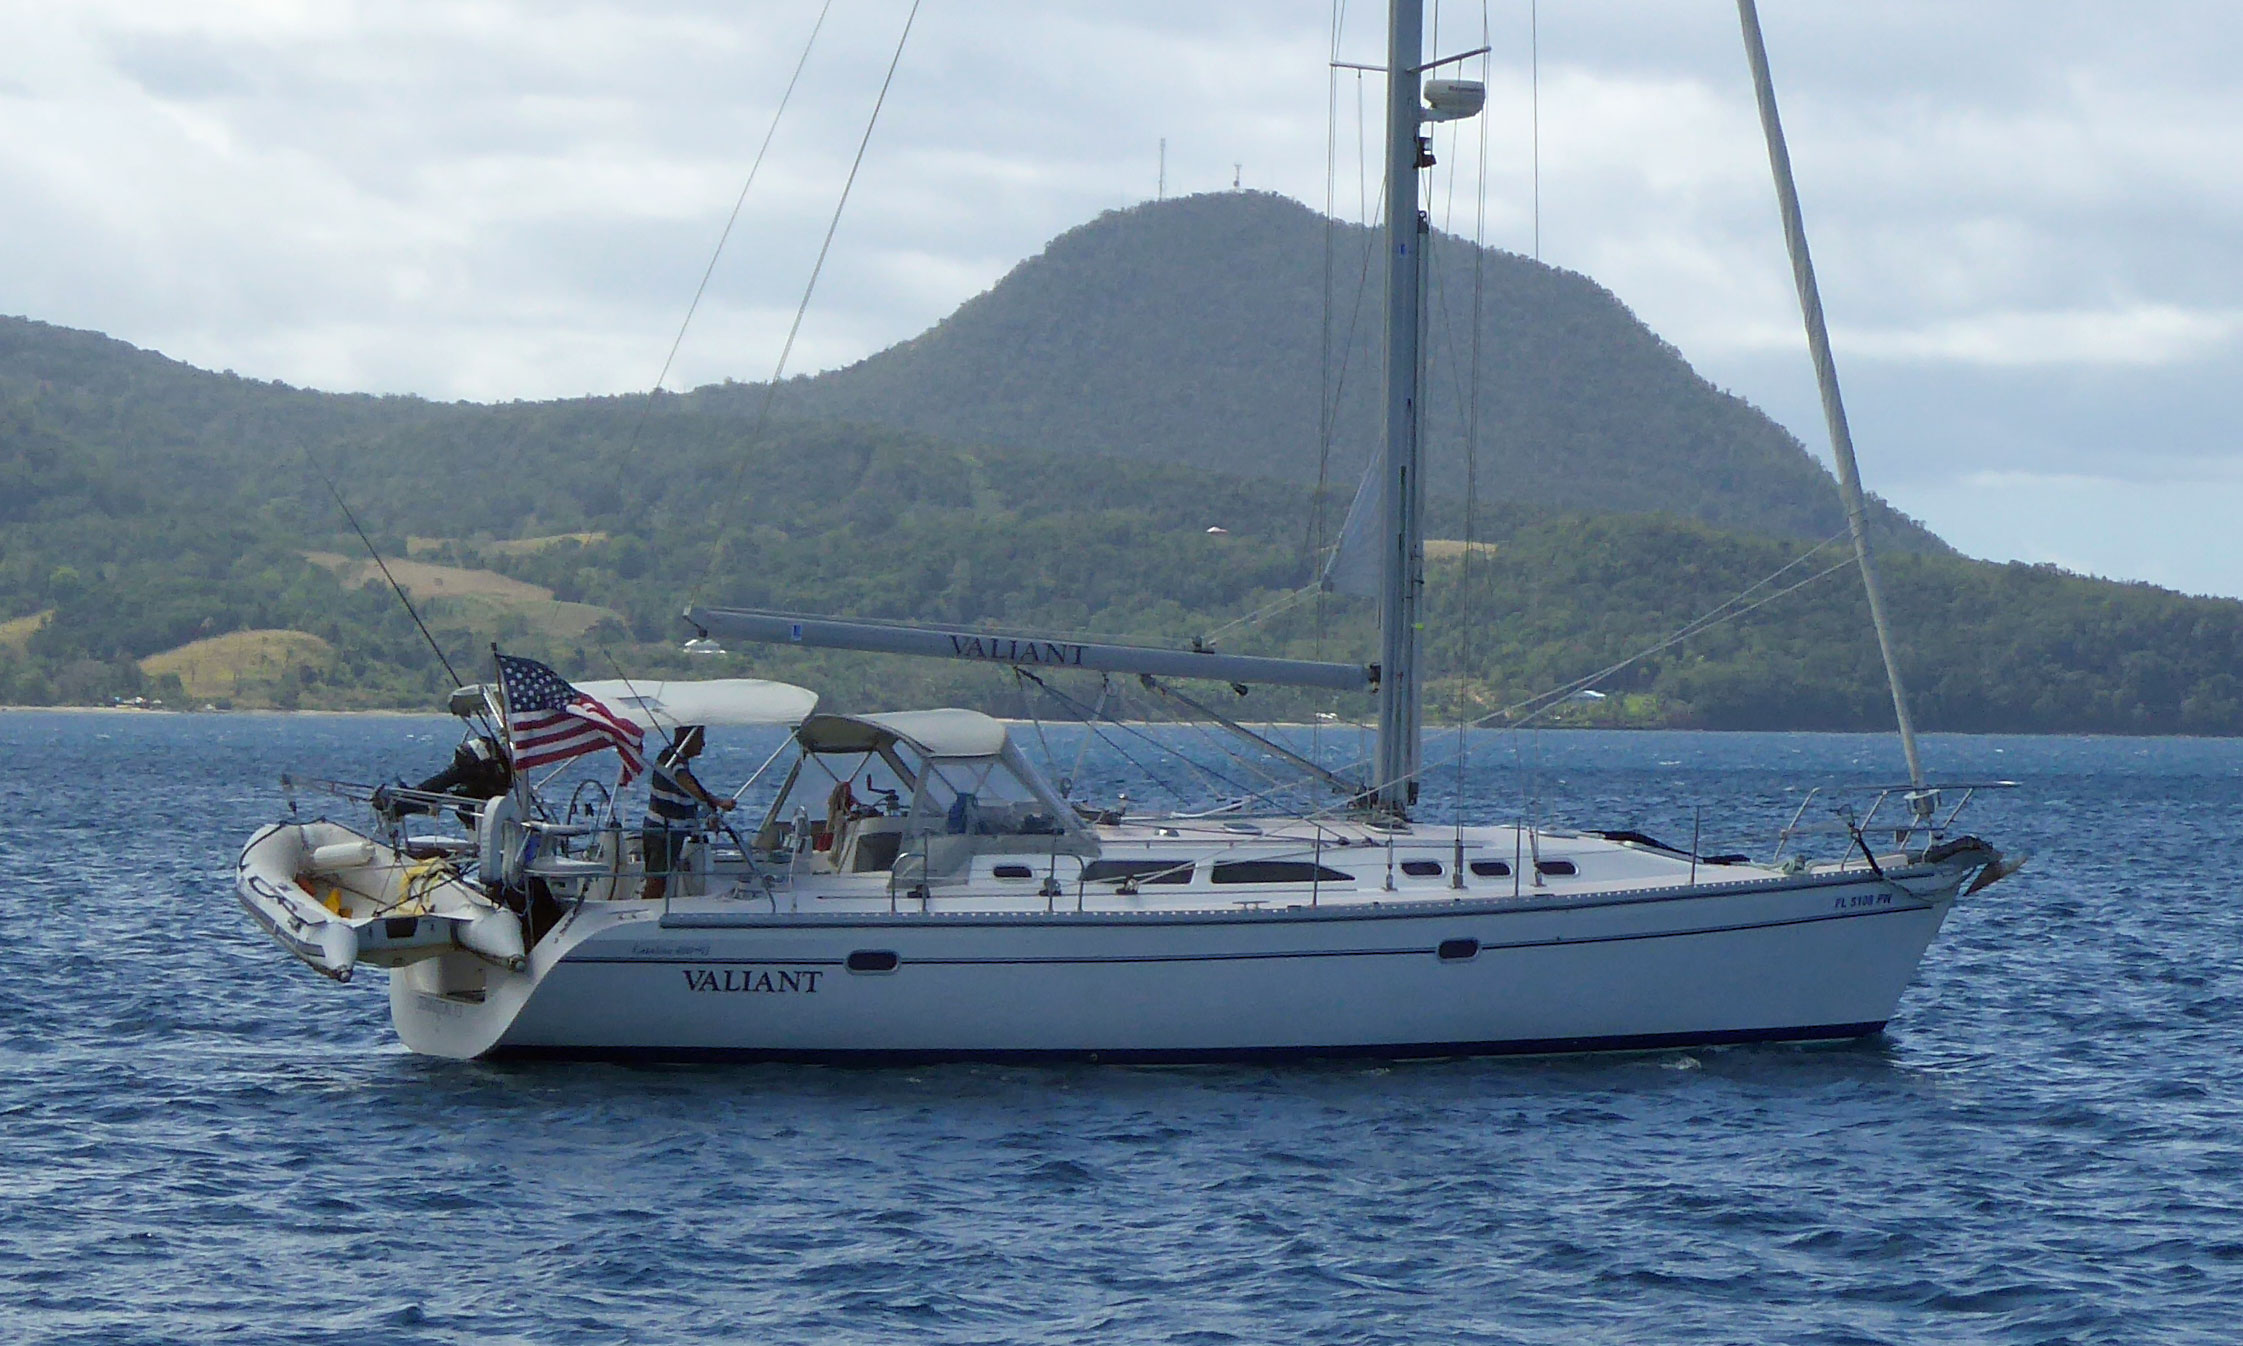 A Catalina 400 Mk2 sailboat under power